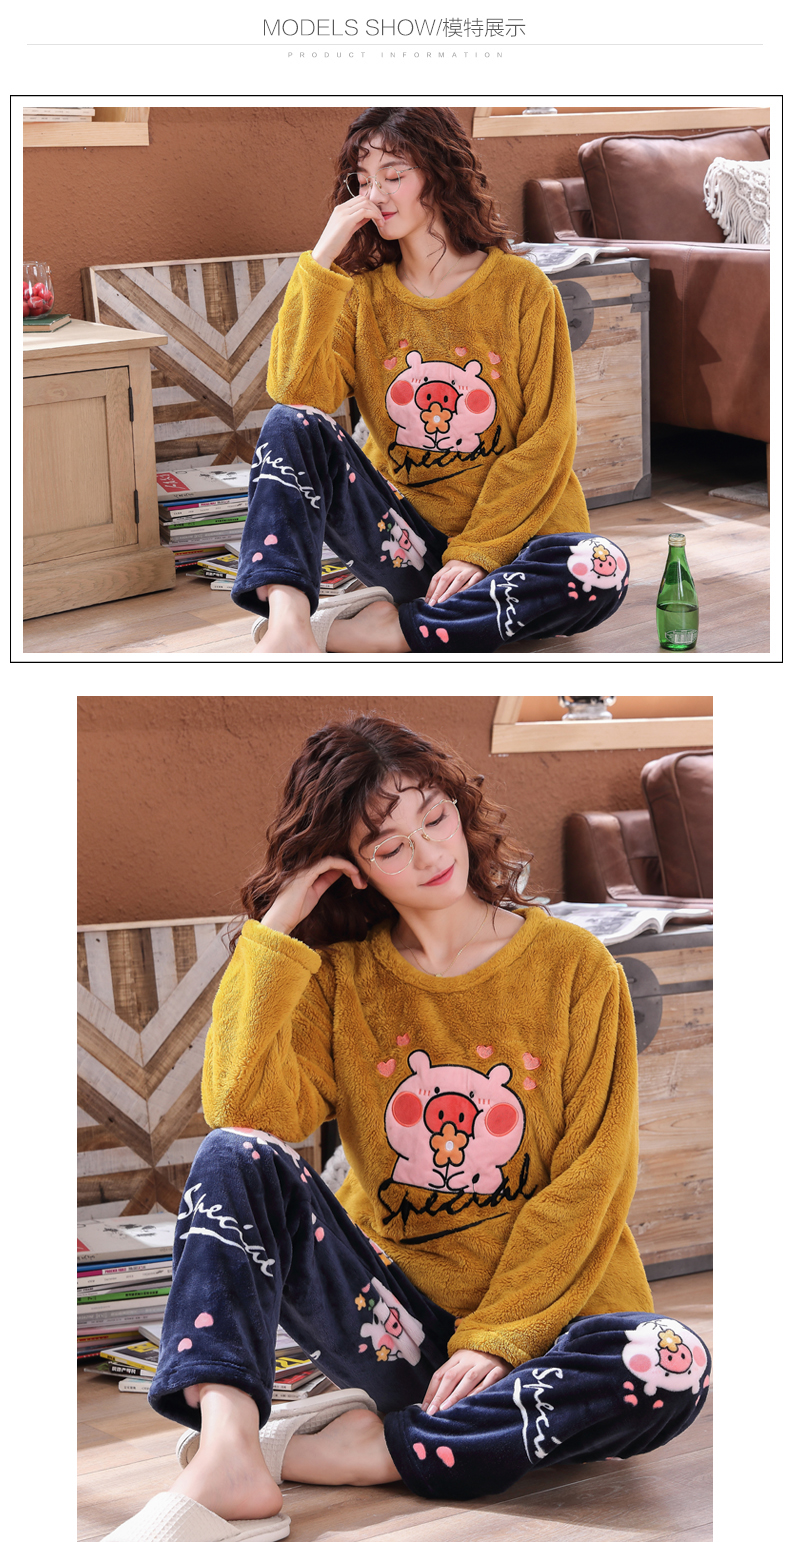 Long Sleeve Warm Flannel Pajamas Winter Women Pajama Sets Print Thicken Sleepwear Pyjamas Plus Size 3XL 4XL 5XL 85kg Nightwear 393